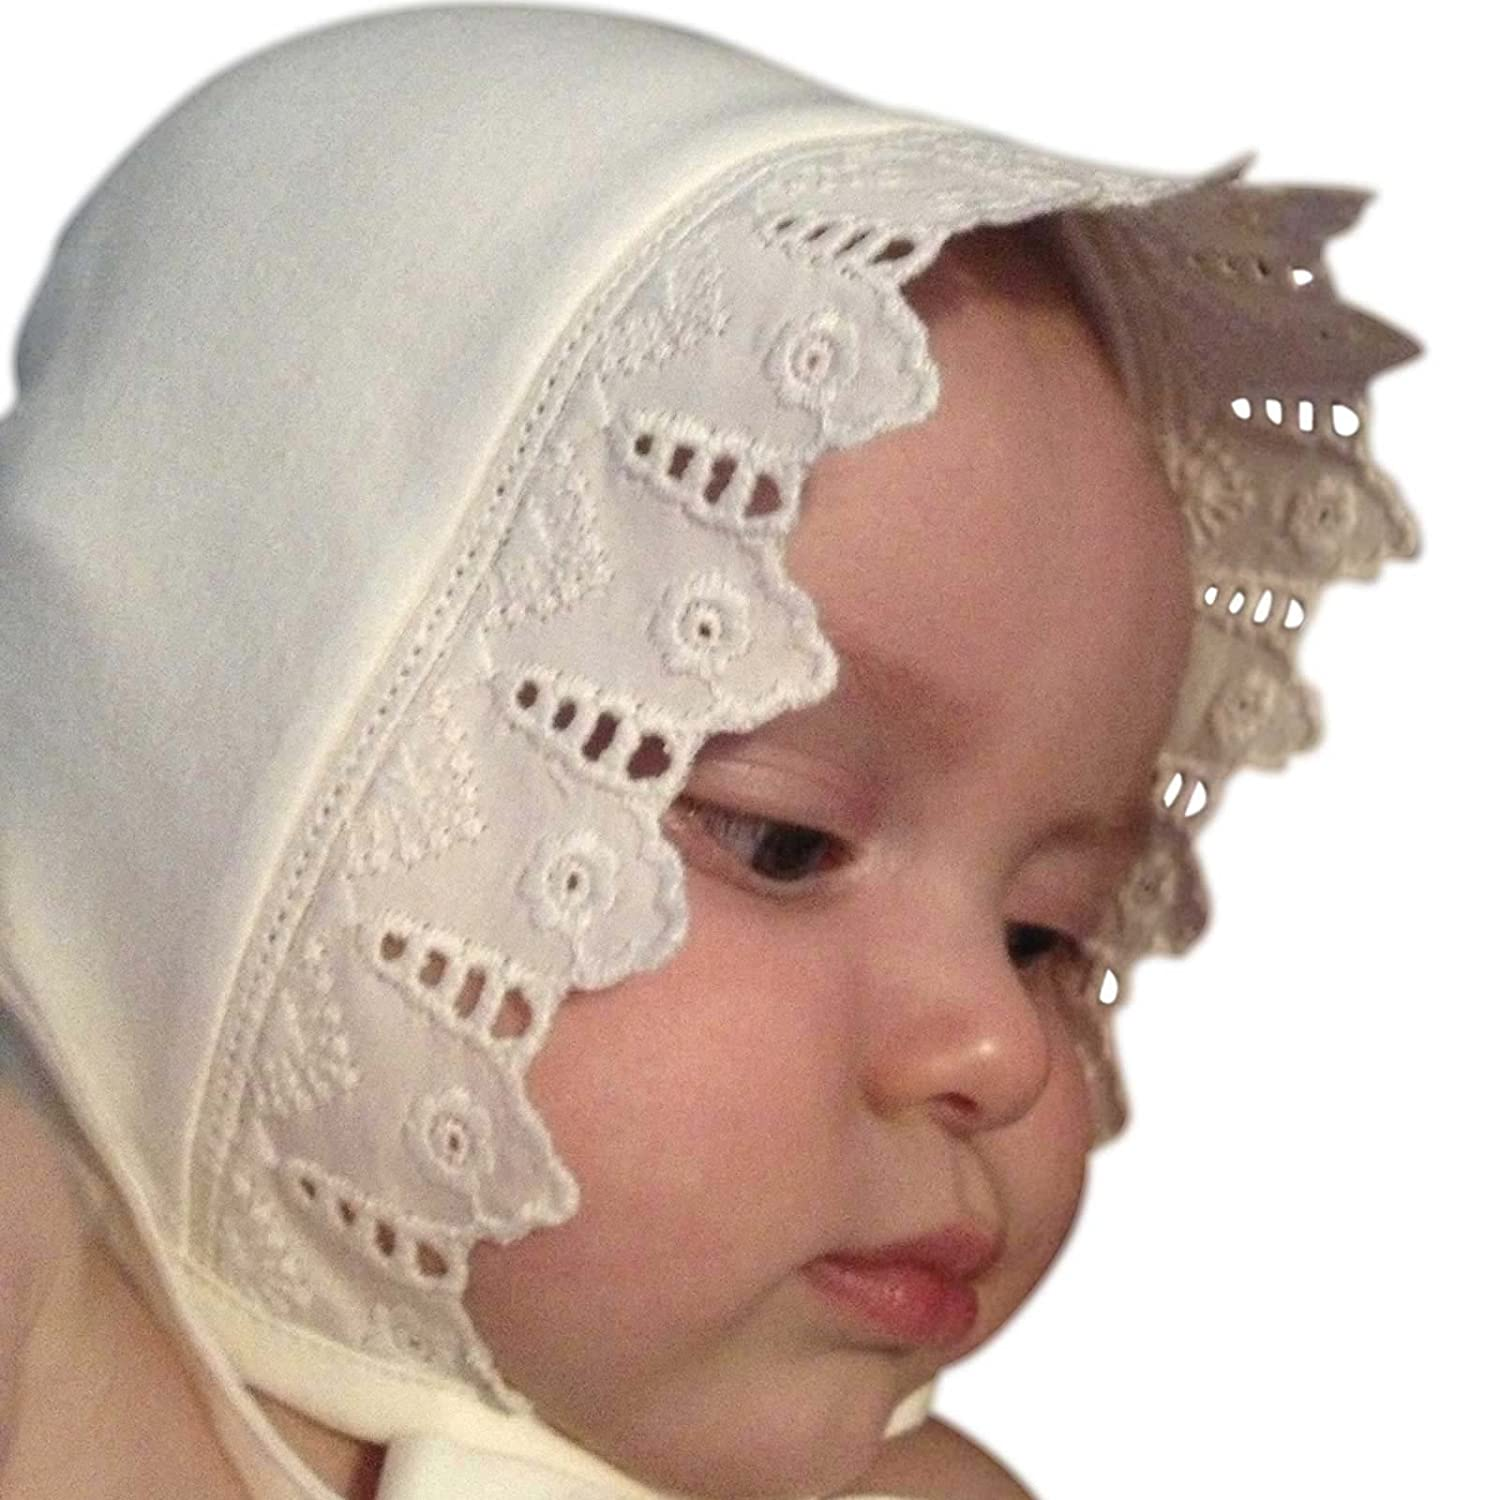 Vintage Style Children's Clothing: Girls, Boys, Baby, Toddler Victorian Organics Girls Bonnet Organic Cotton and Lace Toddler Hat $28.00 AT vintagedancer.com